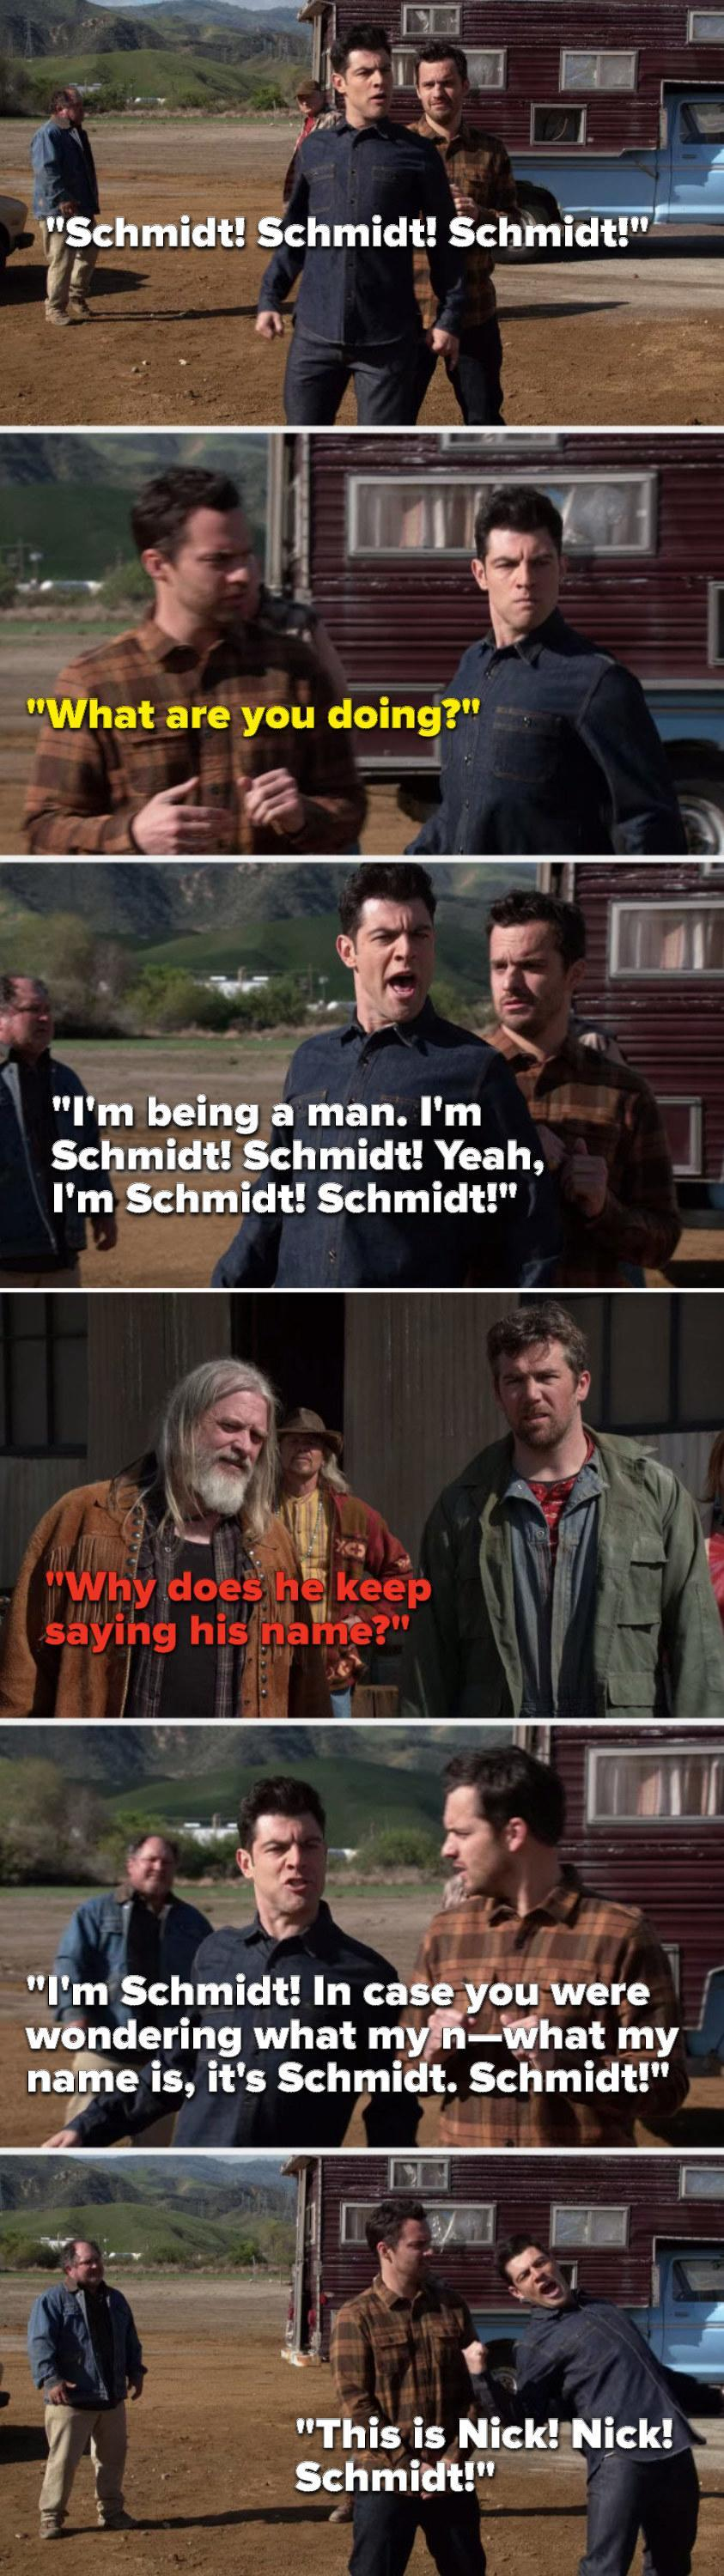 Schmidt says, Schmidt, Schmidt, Schmidt, Nick says, What are you doing, Schmidt says, I'm being a man, I'm Schmidt, Schmidt, Yeah, I'm Schmidt, in case you were wondering what my name is, it's Schmidt, Schmidt, this is Nick, Nick, Schmidt